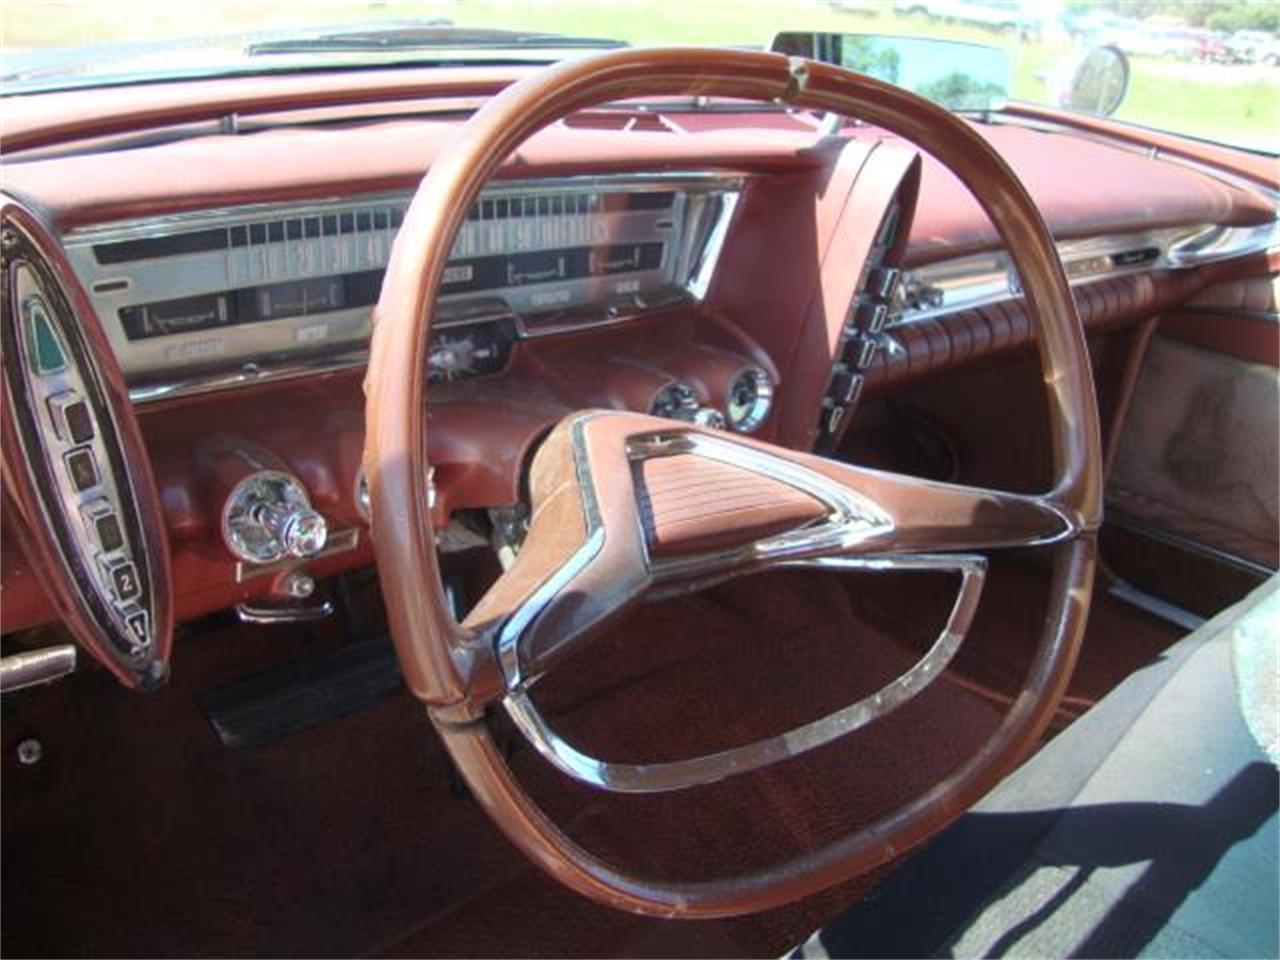 1961 Chrysler Imperial for sale in Milbank, SD – photo 4